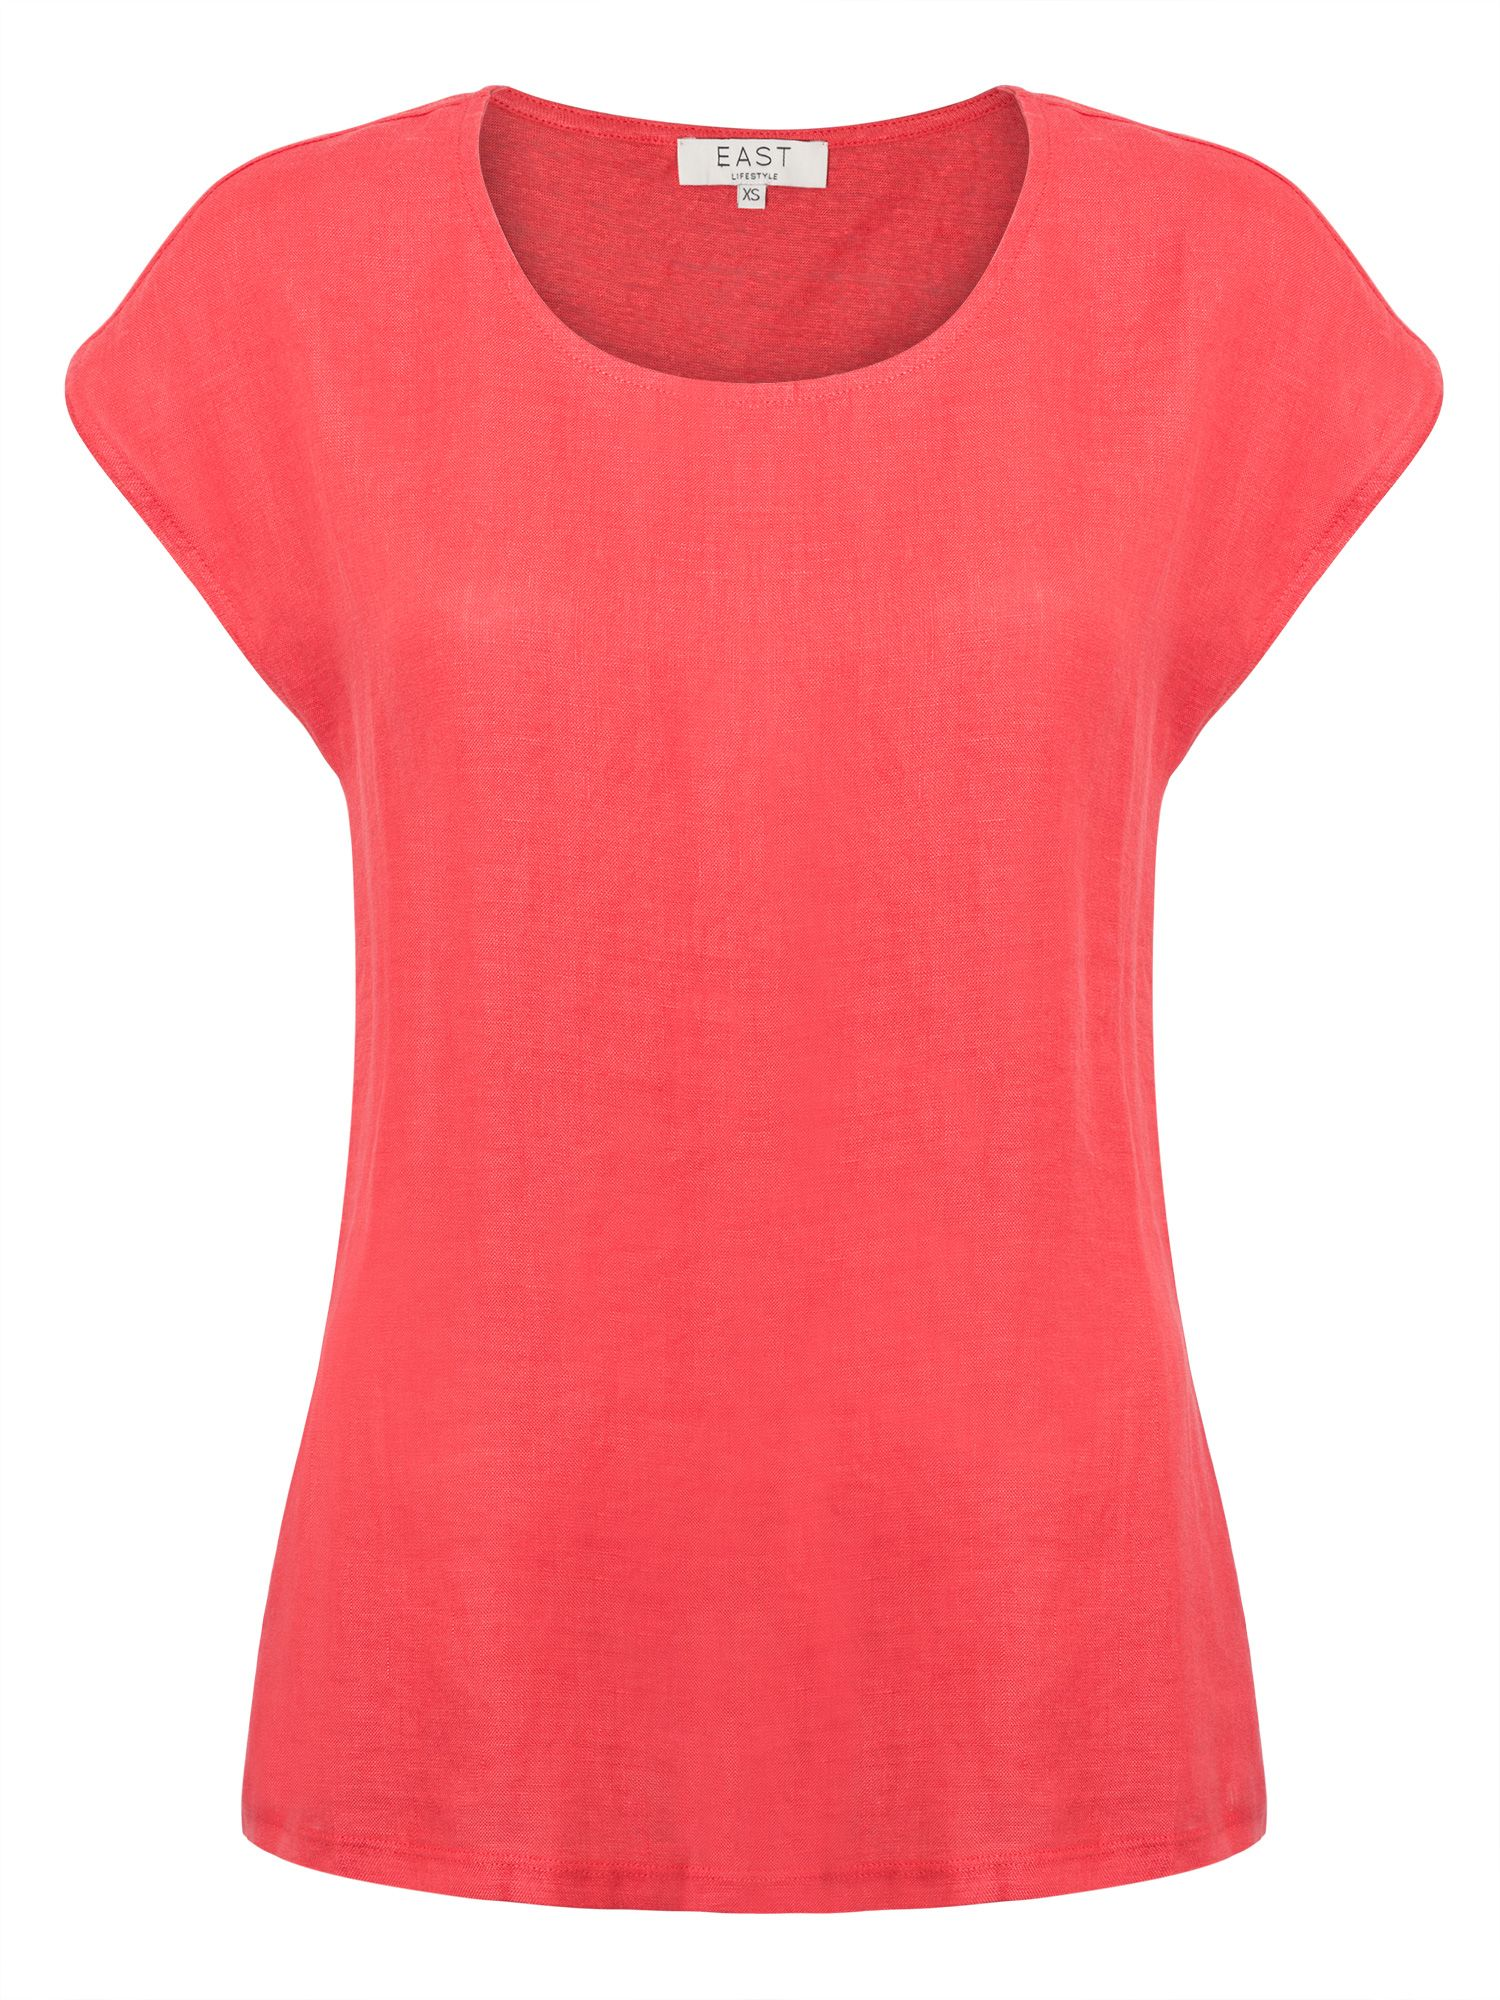 East Combination Jersey Tee, Red